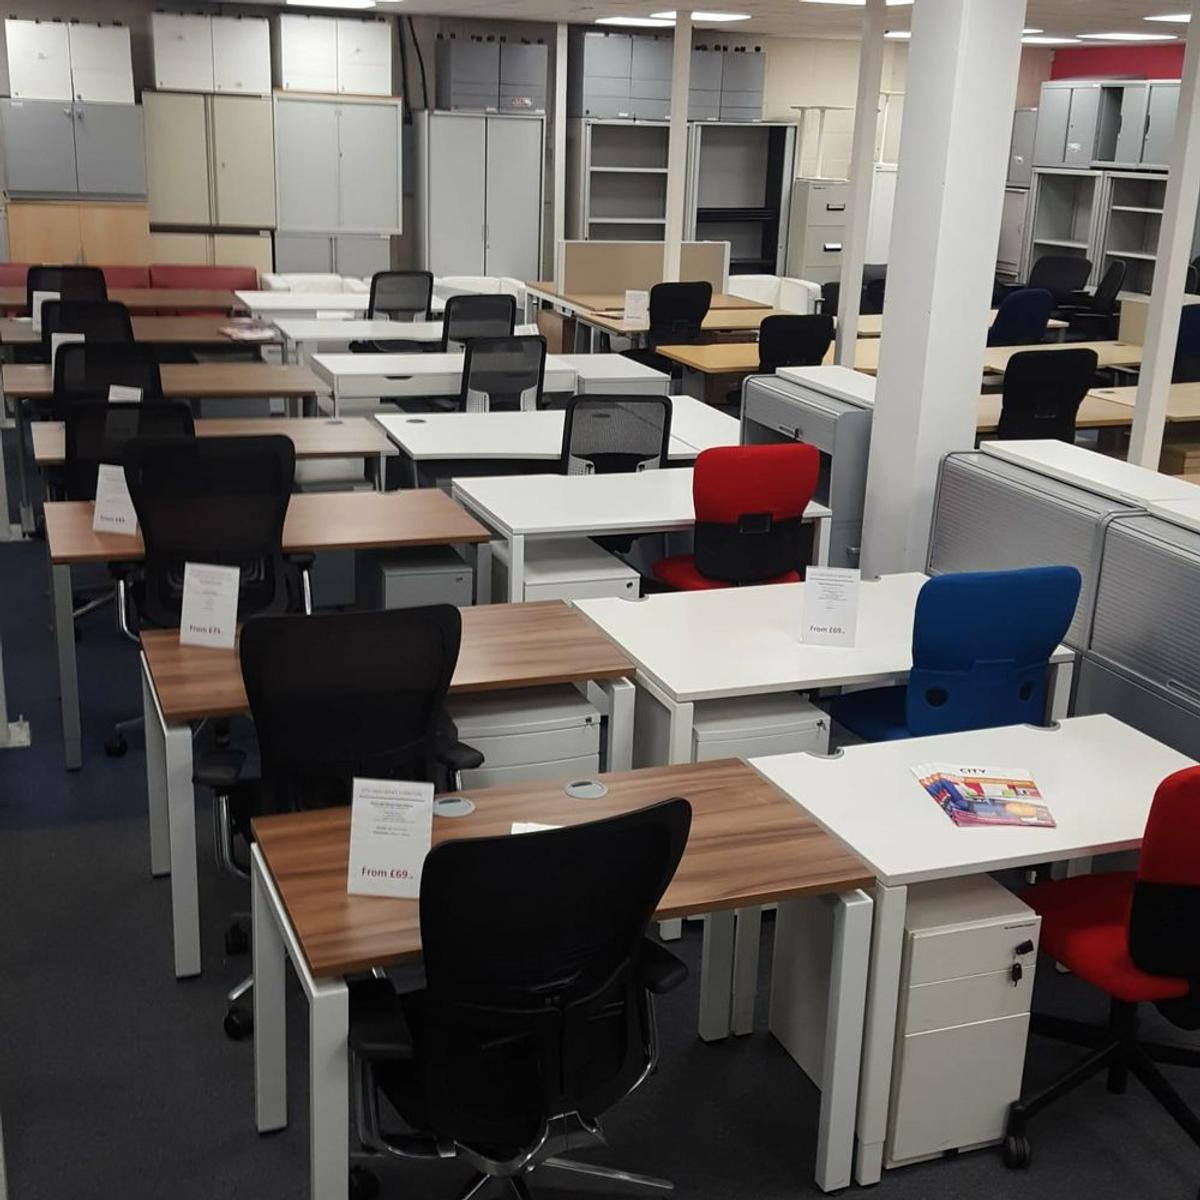 Used Office Furniture Sale Now On In Cm20 Harlow Fur 25 00 Zum Verkauf Shpock At